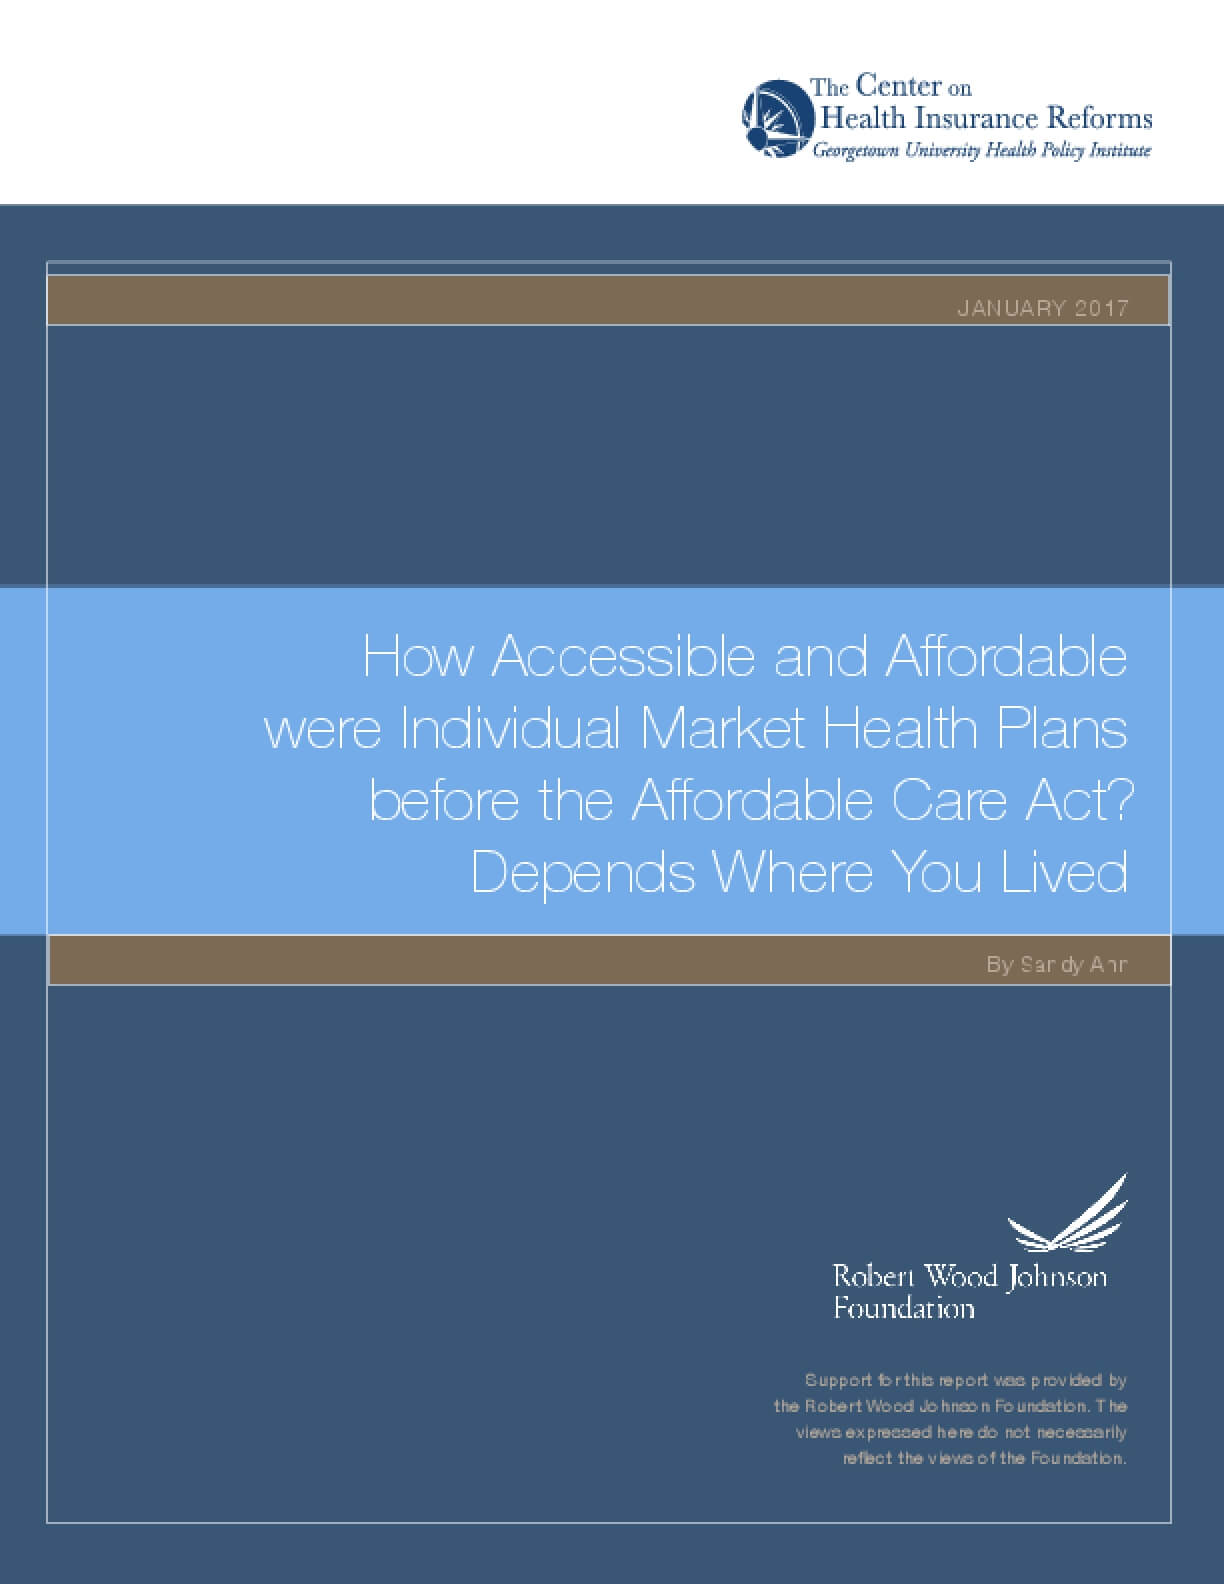 How Accessible and Affordable Were Individual Market Health Plans Before the Affordable Care Act? Depends Where You Lived